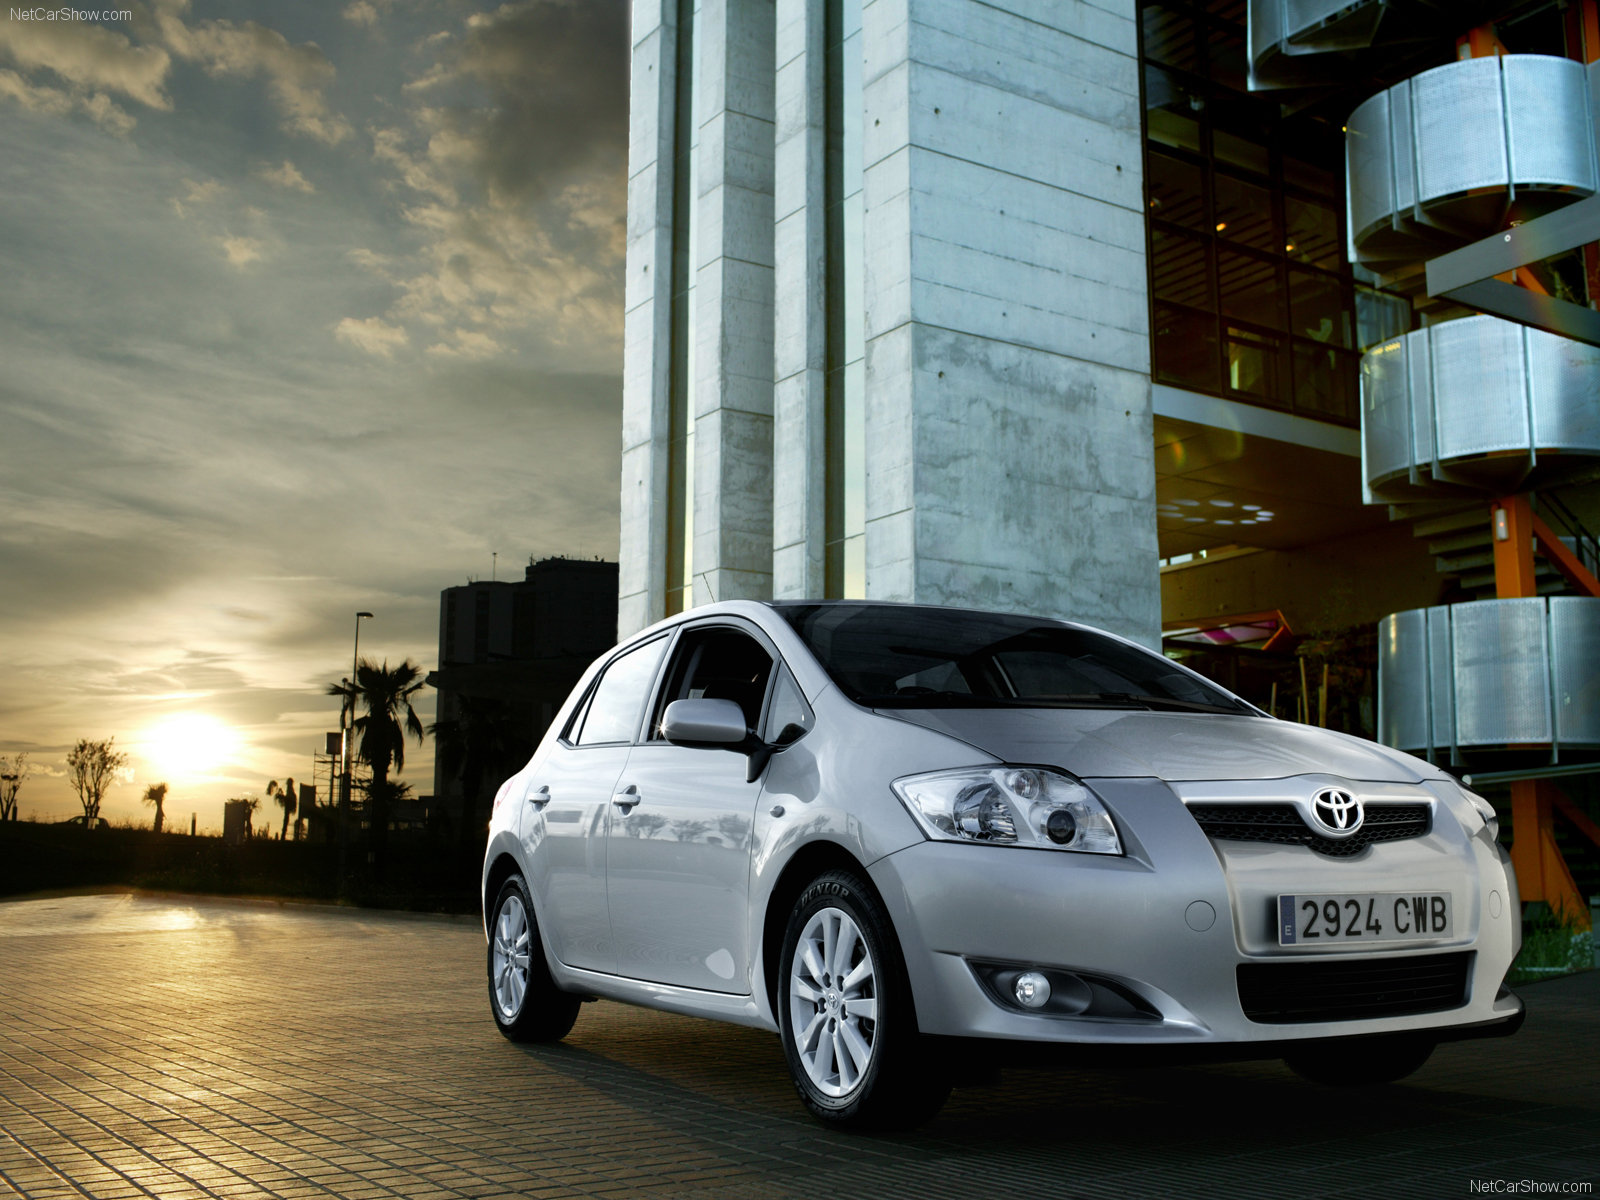 toyota images toyota auris 2007 hd wallpaper and background photos 327905. Black Bedroom Furniture Sets. Home Design Ideas